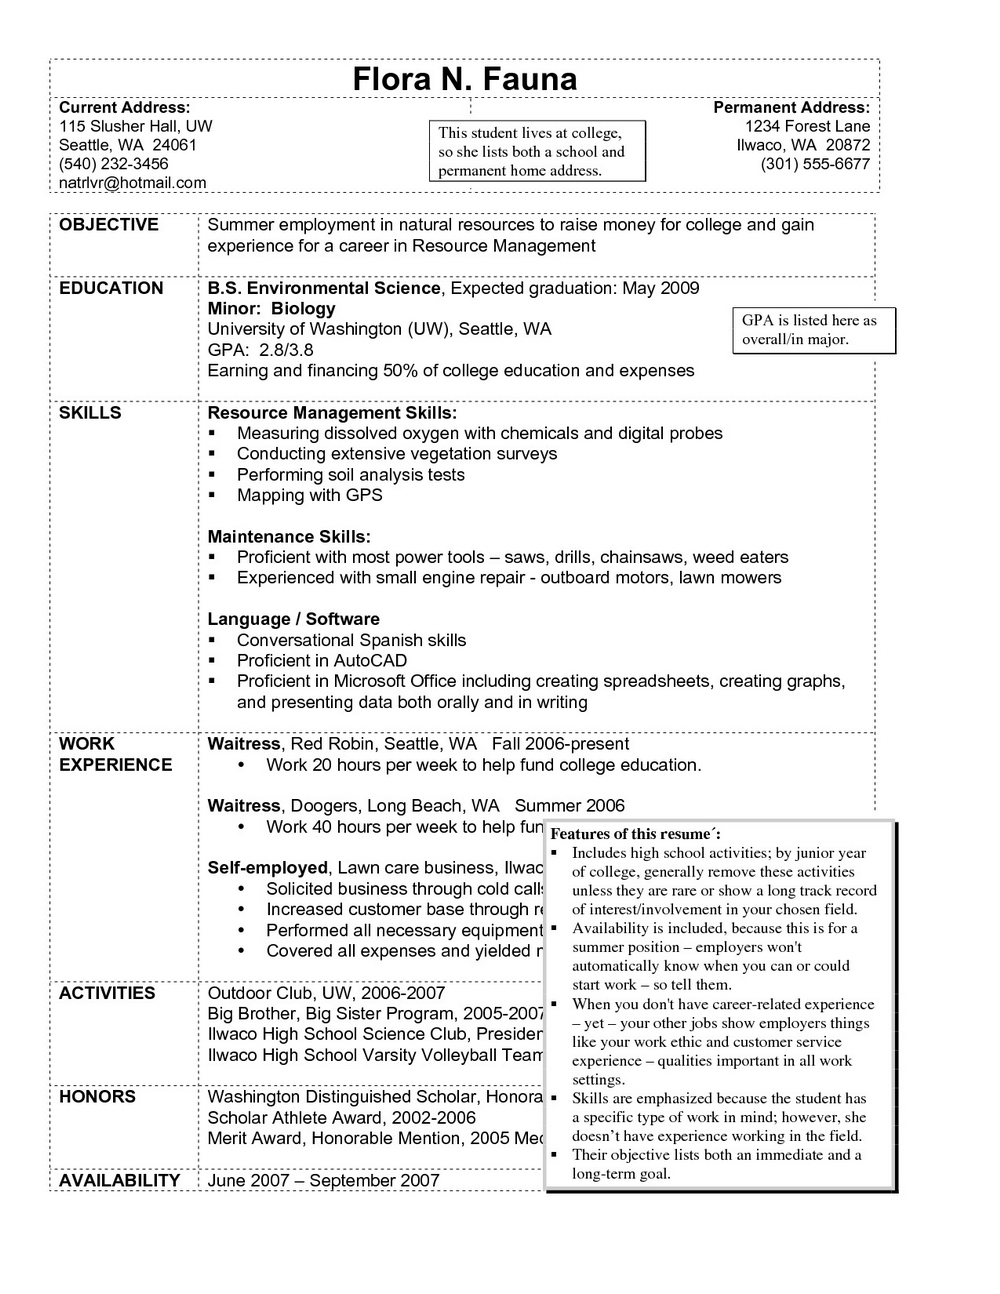 Resume For Hotel Housekeeping Job